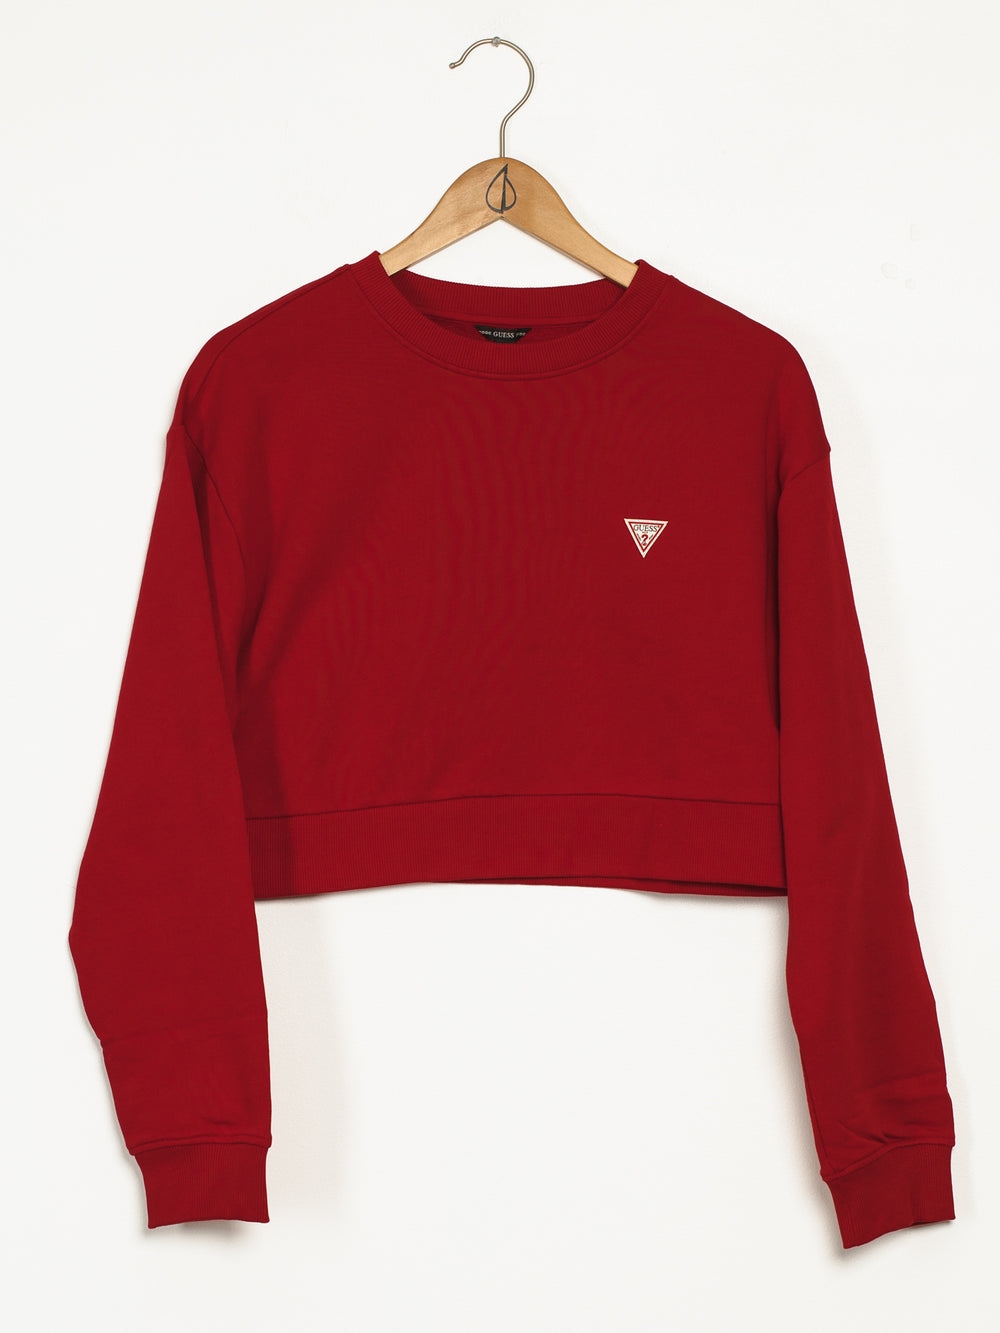 WOMENS FRENCH TERRY CROP CREW - RED